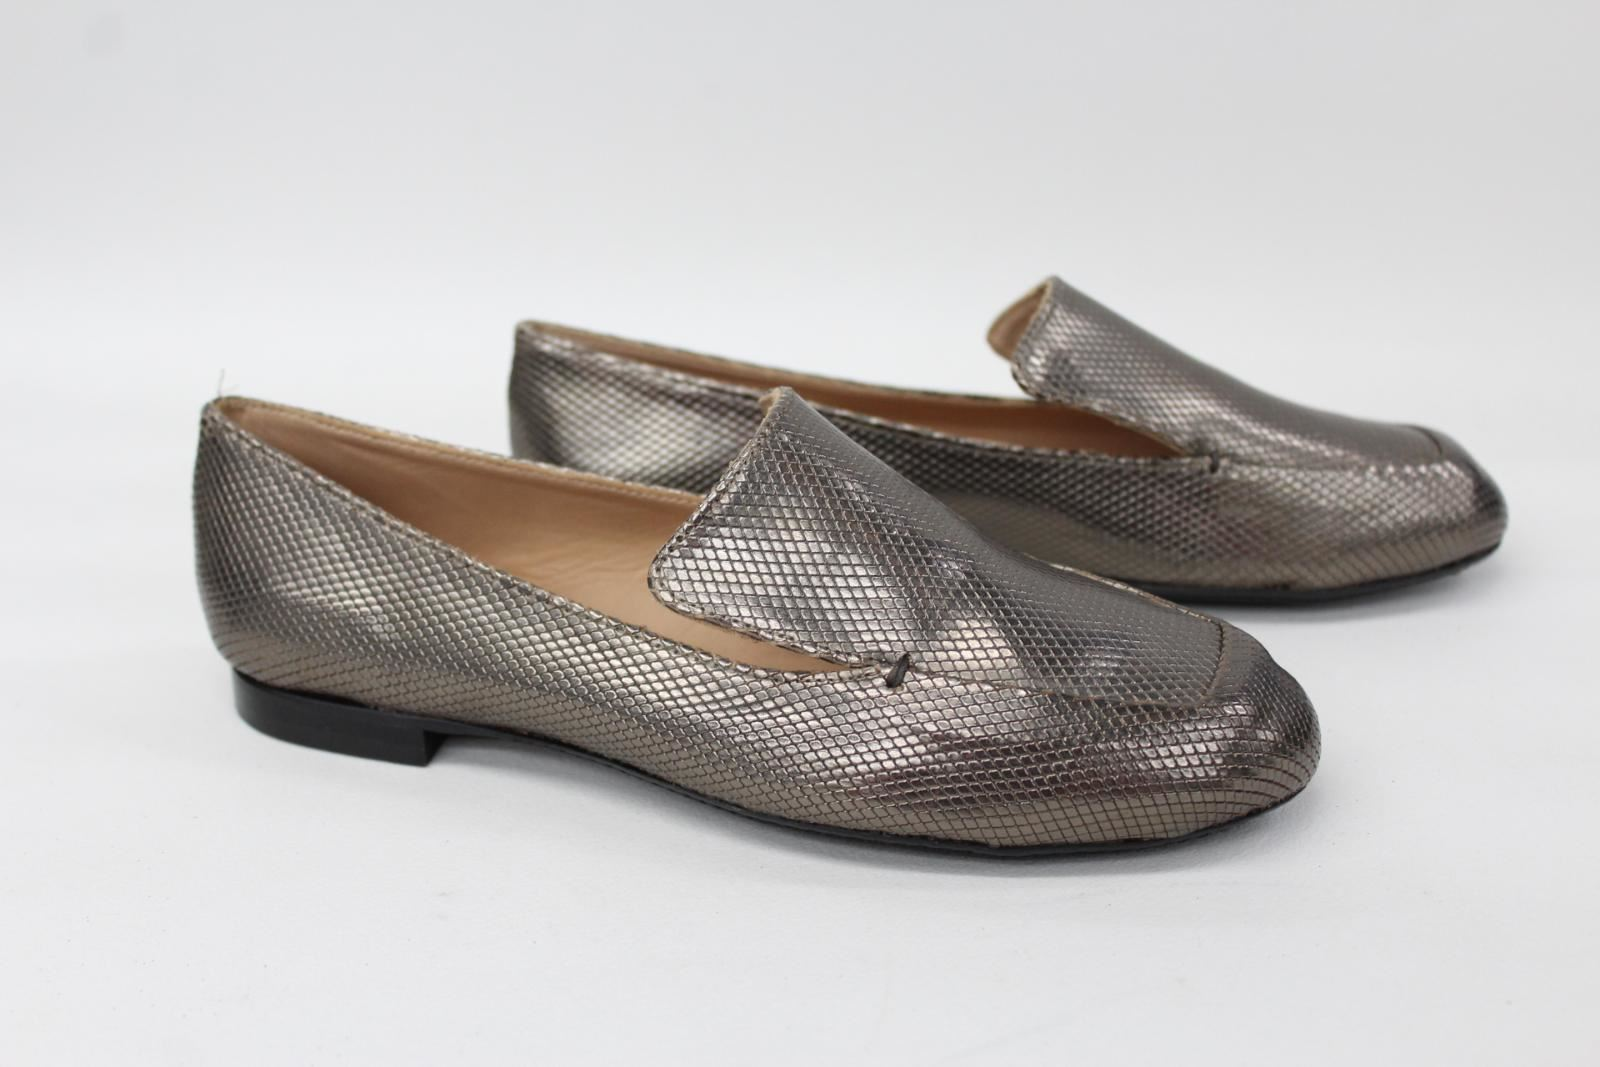 ROBERT-CLERGERIE-Ladies-Gold-Scaled-Leather-Flat-Loafer-Shoes-UK3-5-EU36-5-NEW